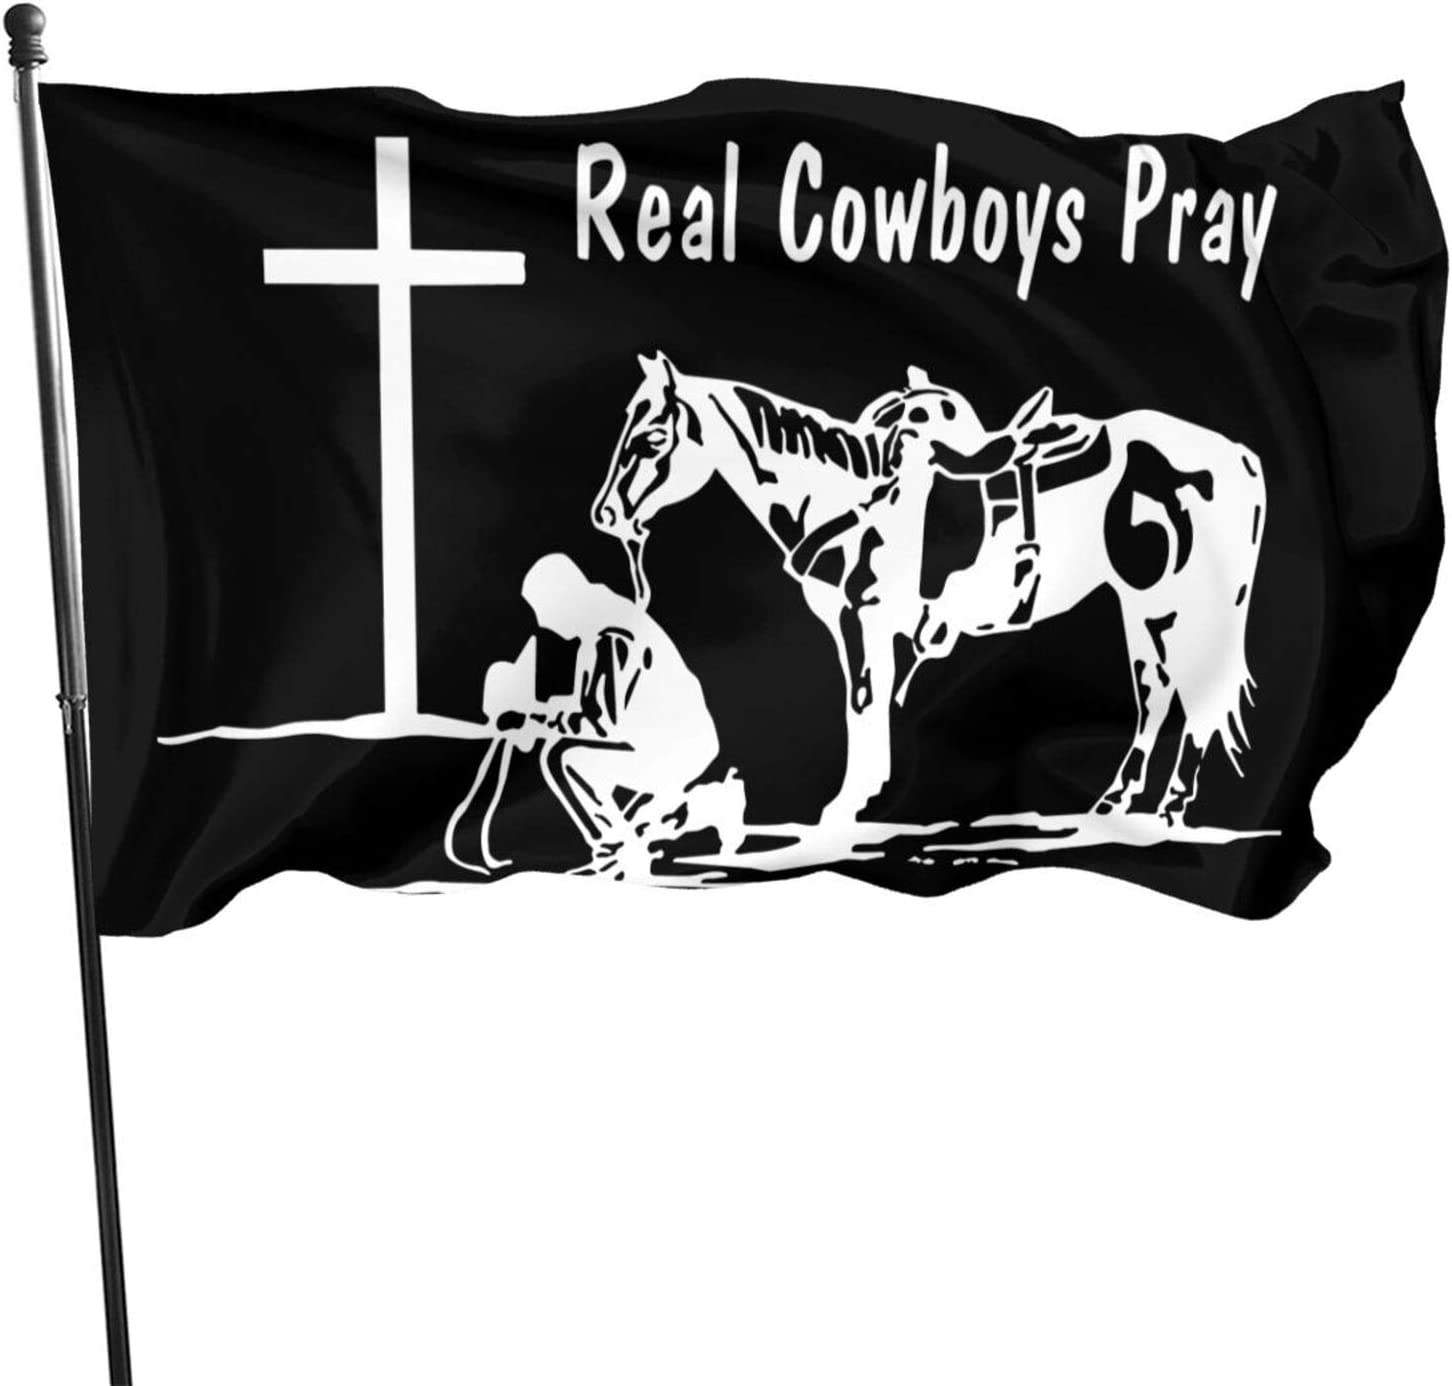 HOCLOCE Christian Praying Cowboy Crosses Flag 3x5 FT Banner, Yard Flags 3 X 5 in Indoor&Outdoor Decorative Home Fall Flags Holiday Decor